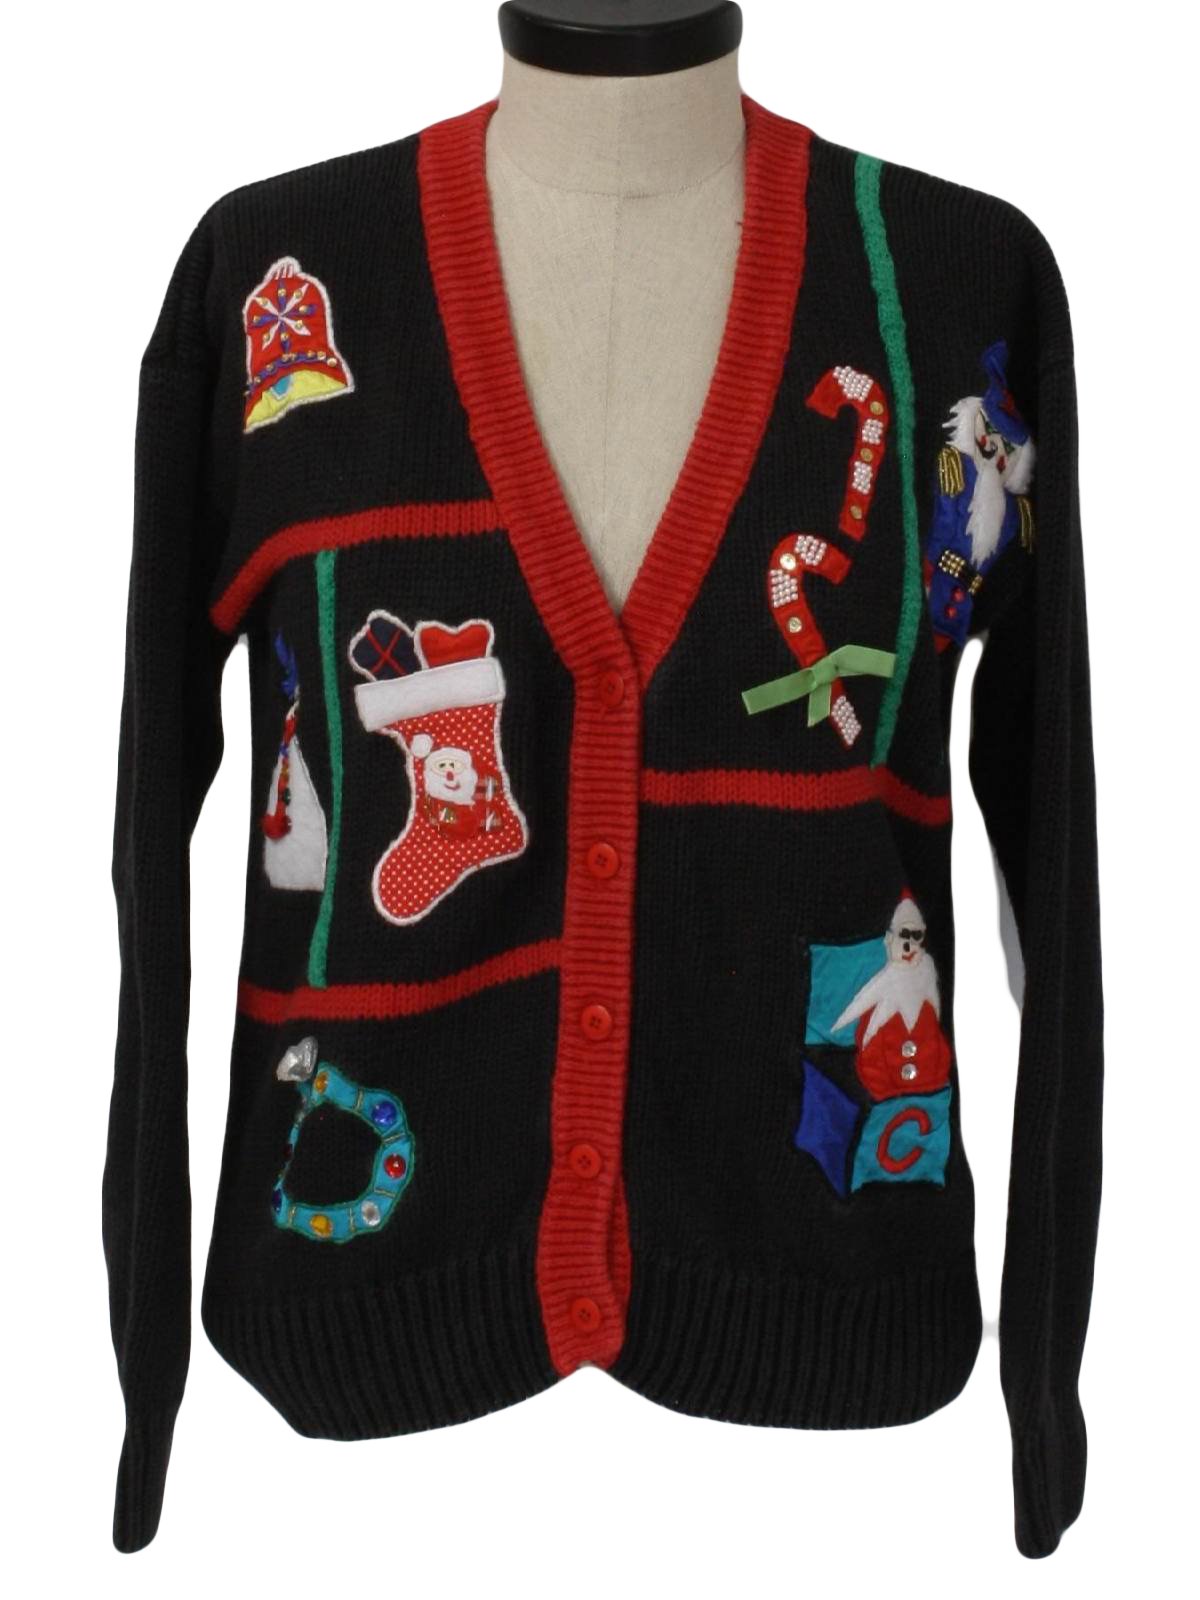 f11ba0bc20 Womens Ugly Christmas Sweater  -Work in Progress- Womens black ...